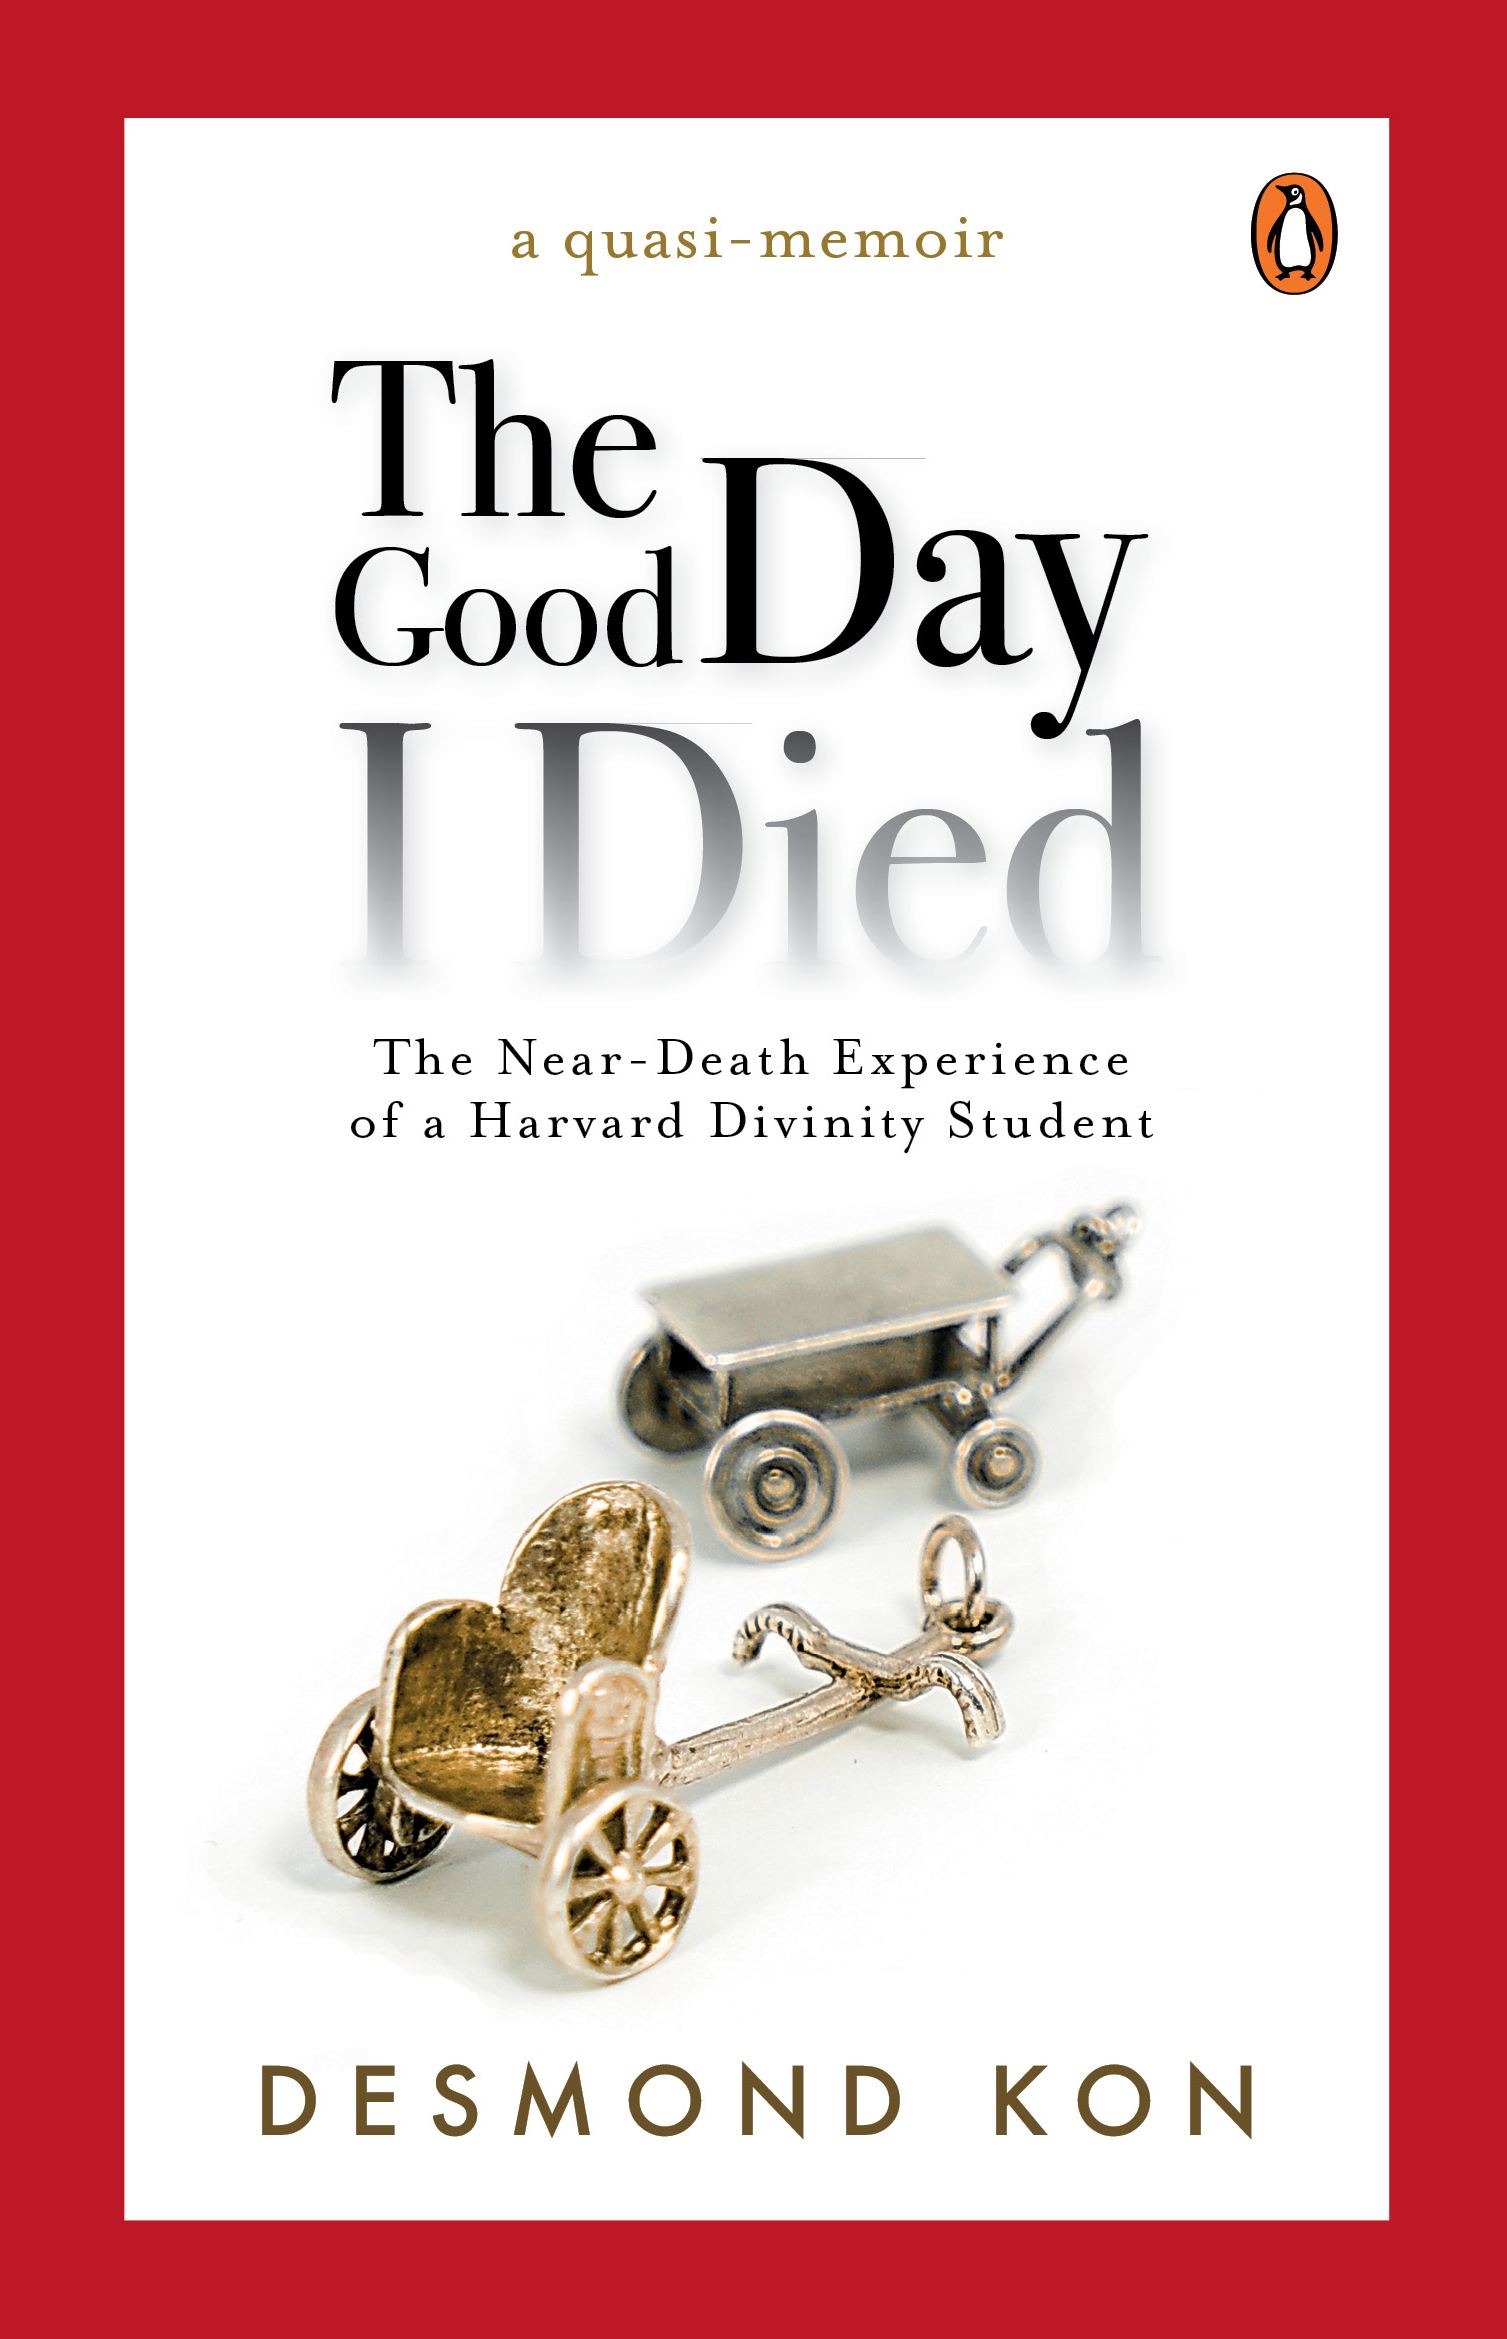 The Good Day I Died: The Near-Death Experience of a Harvard Divinity Student